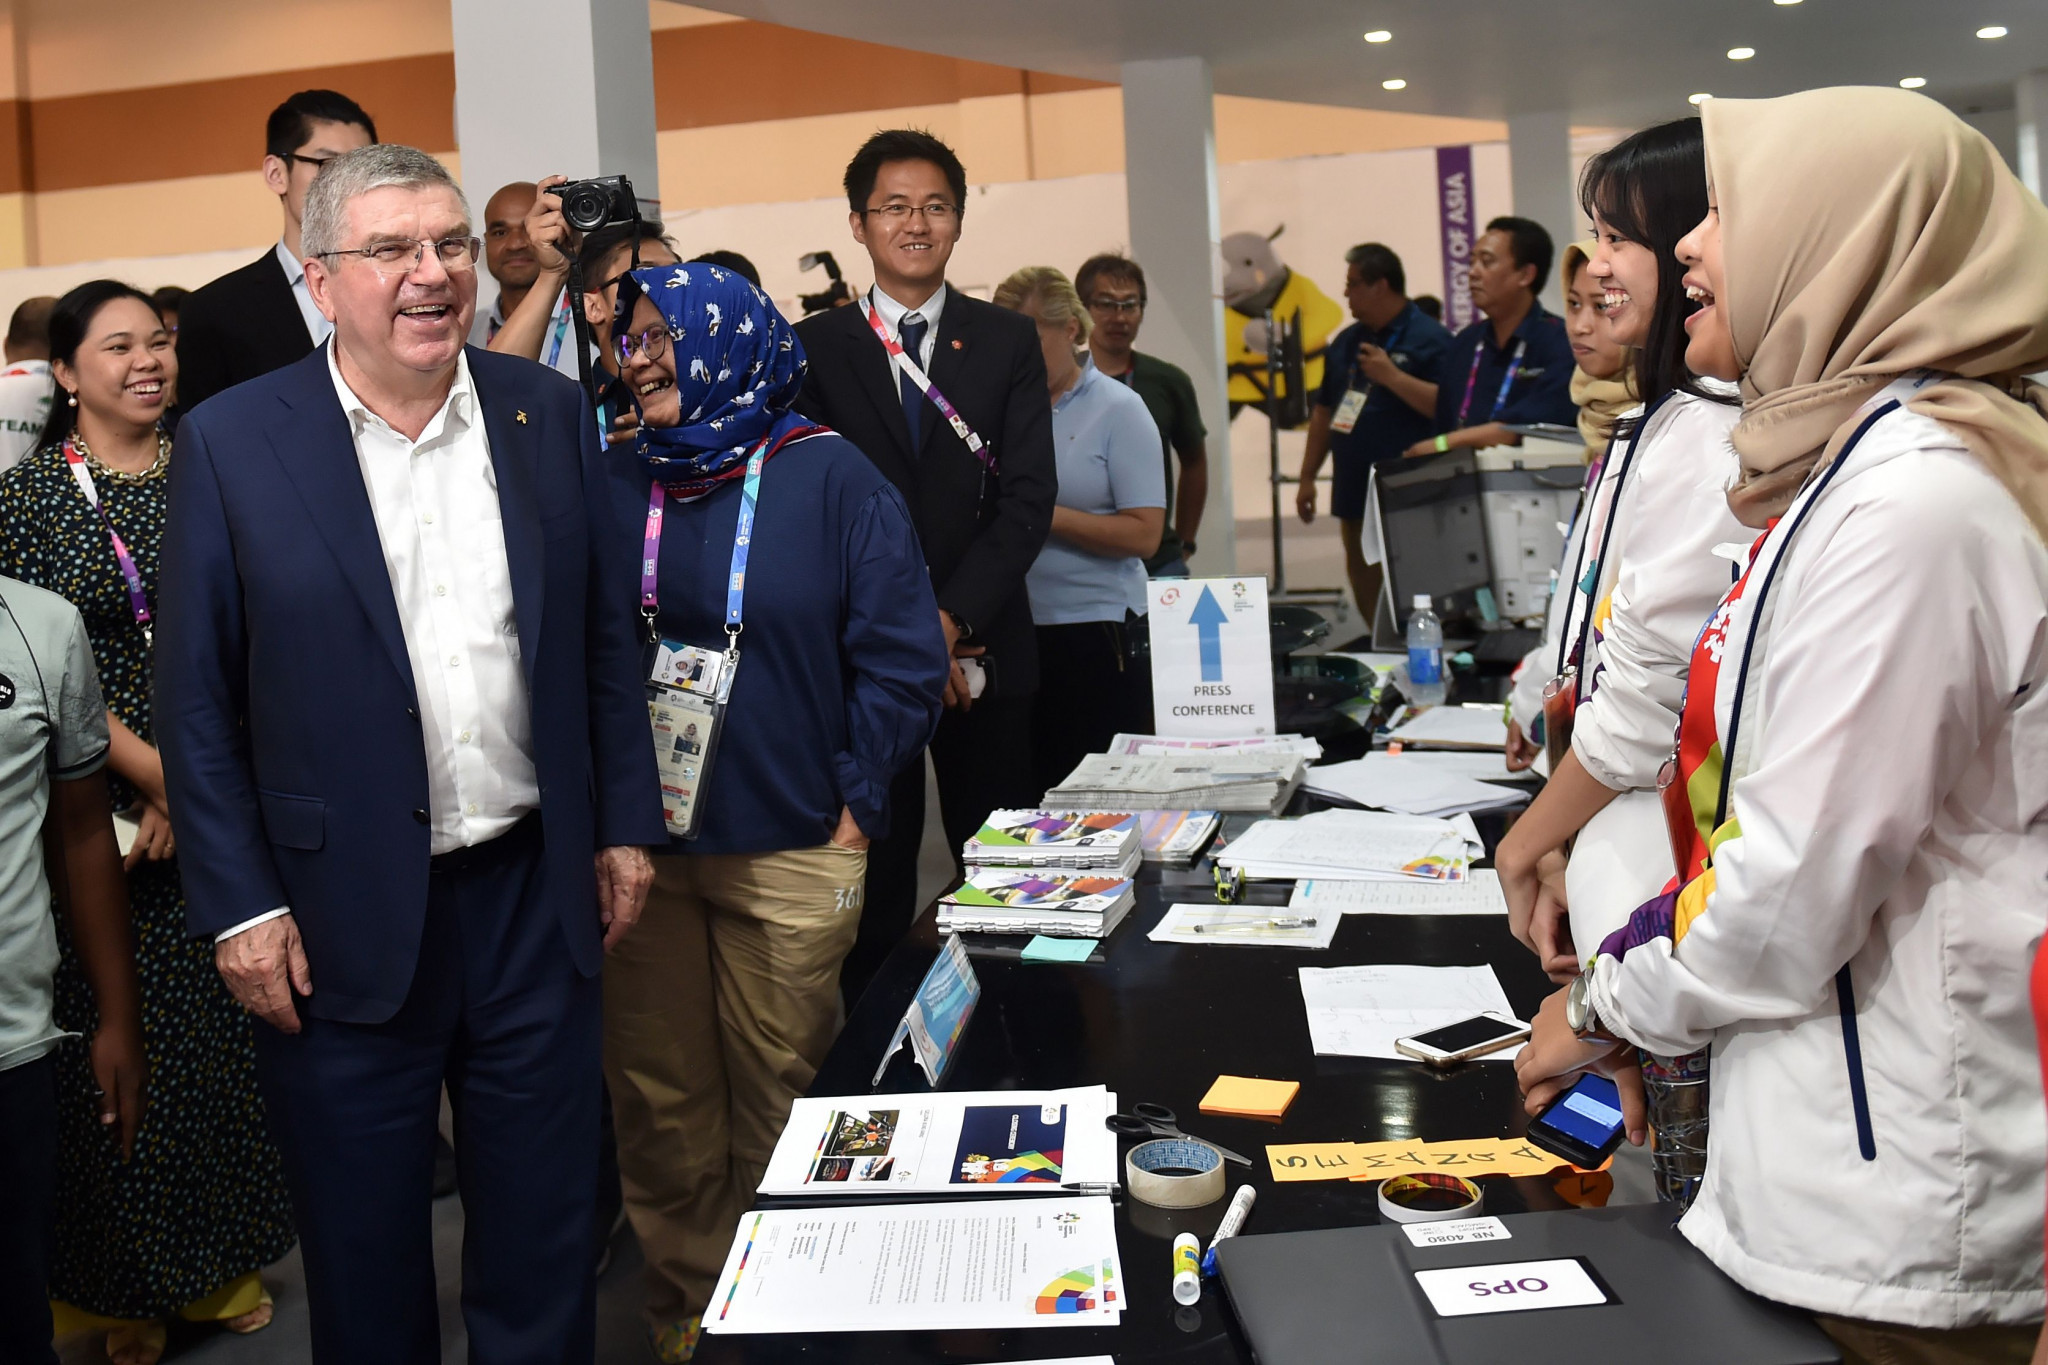 International Olympic Committee President Thomas paid a visit to the Main Press Centre before attending the Closing Ceremony ©Getty Images